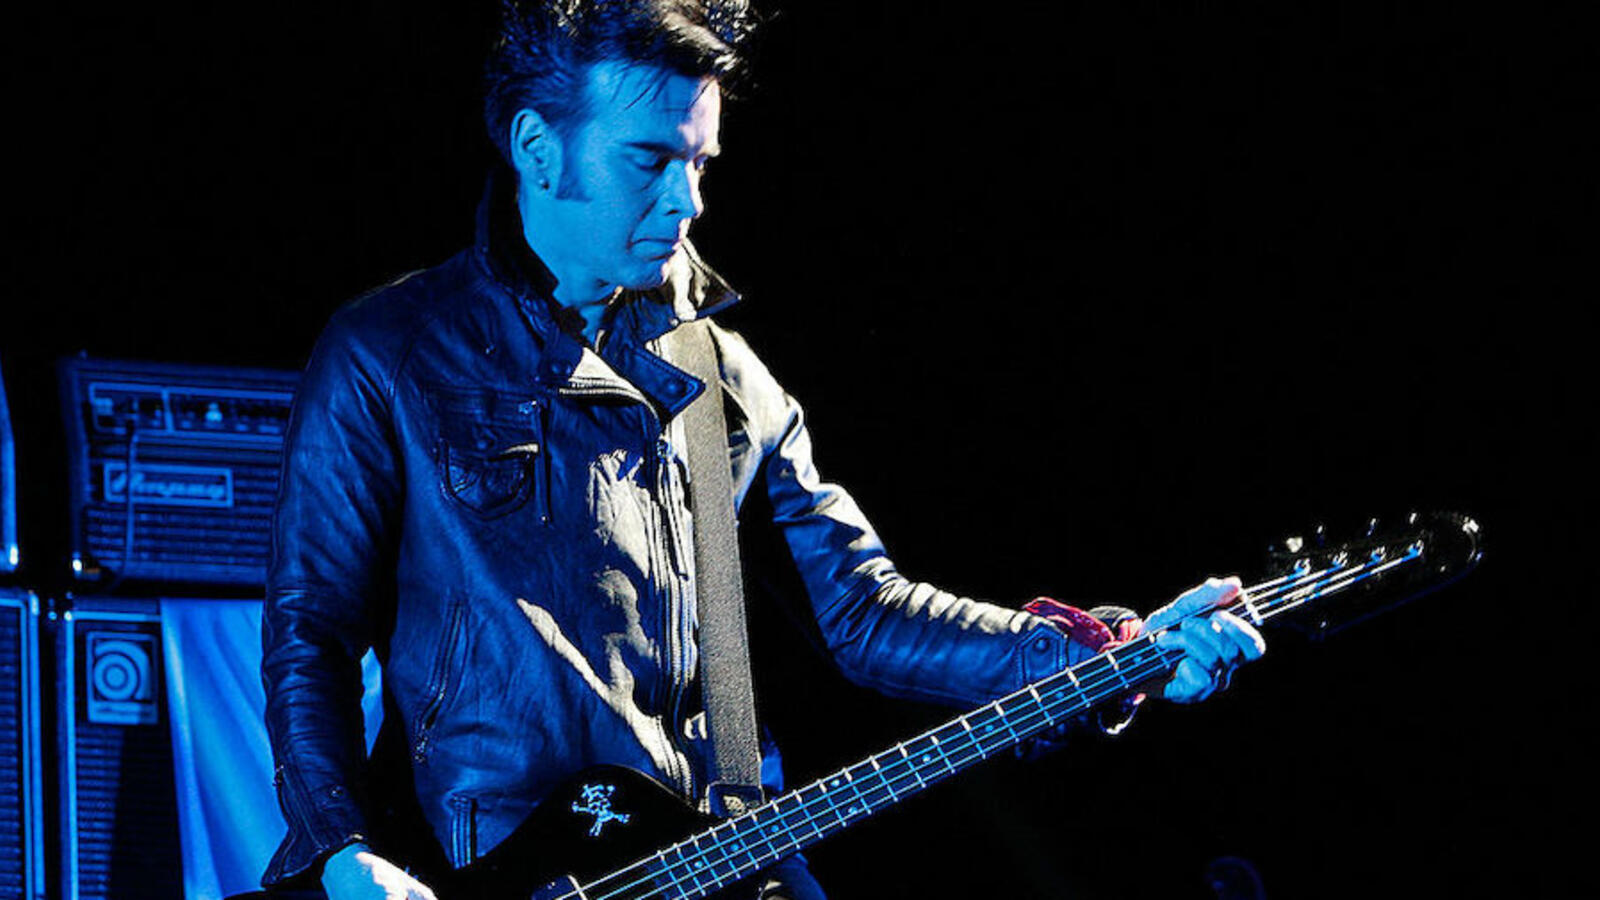 Simon Gallup Says He's Still In The Cure Months After Announcing Departure